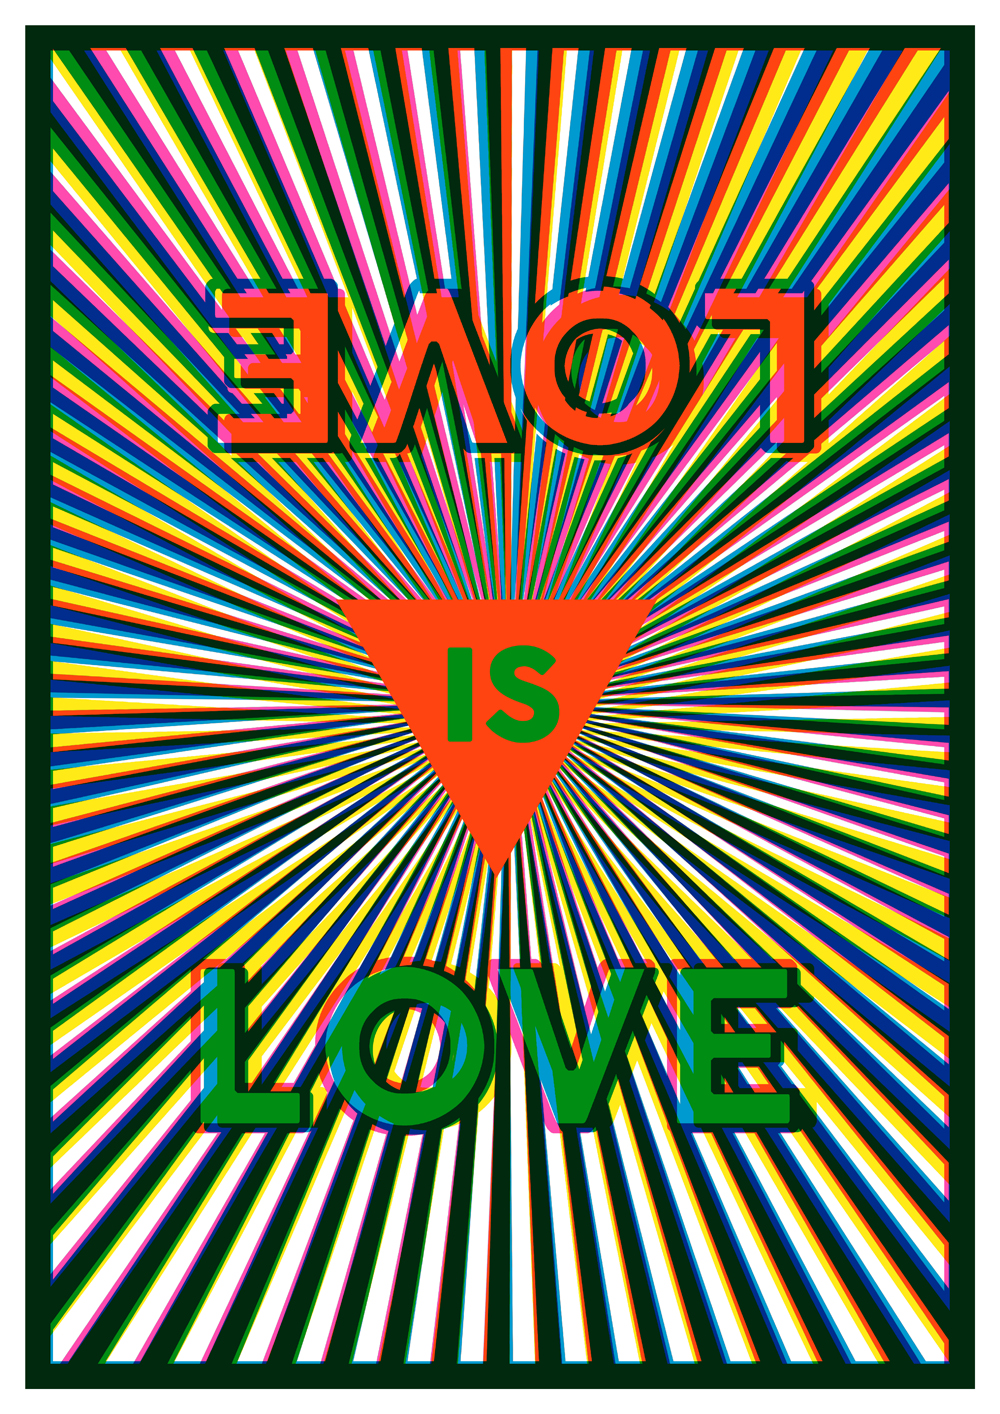 'Love is Love' Margate pride poster by Jacob Love